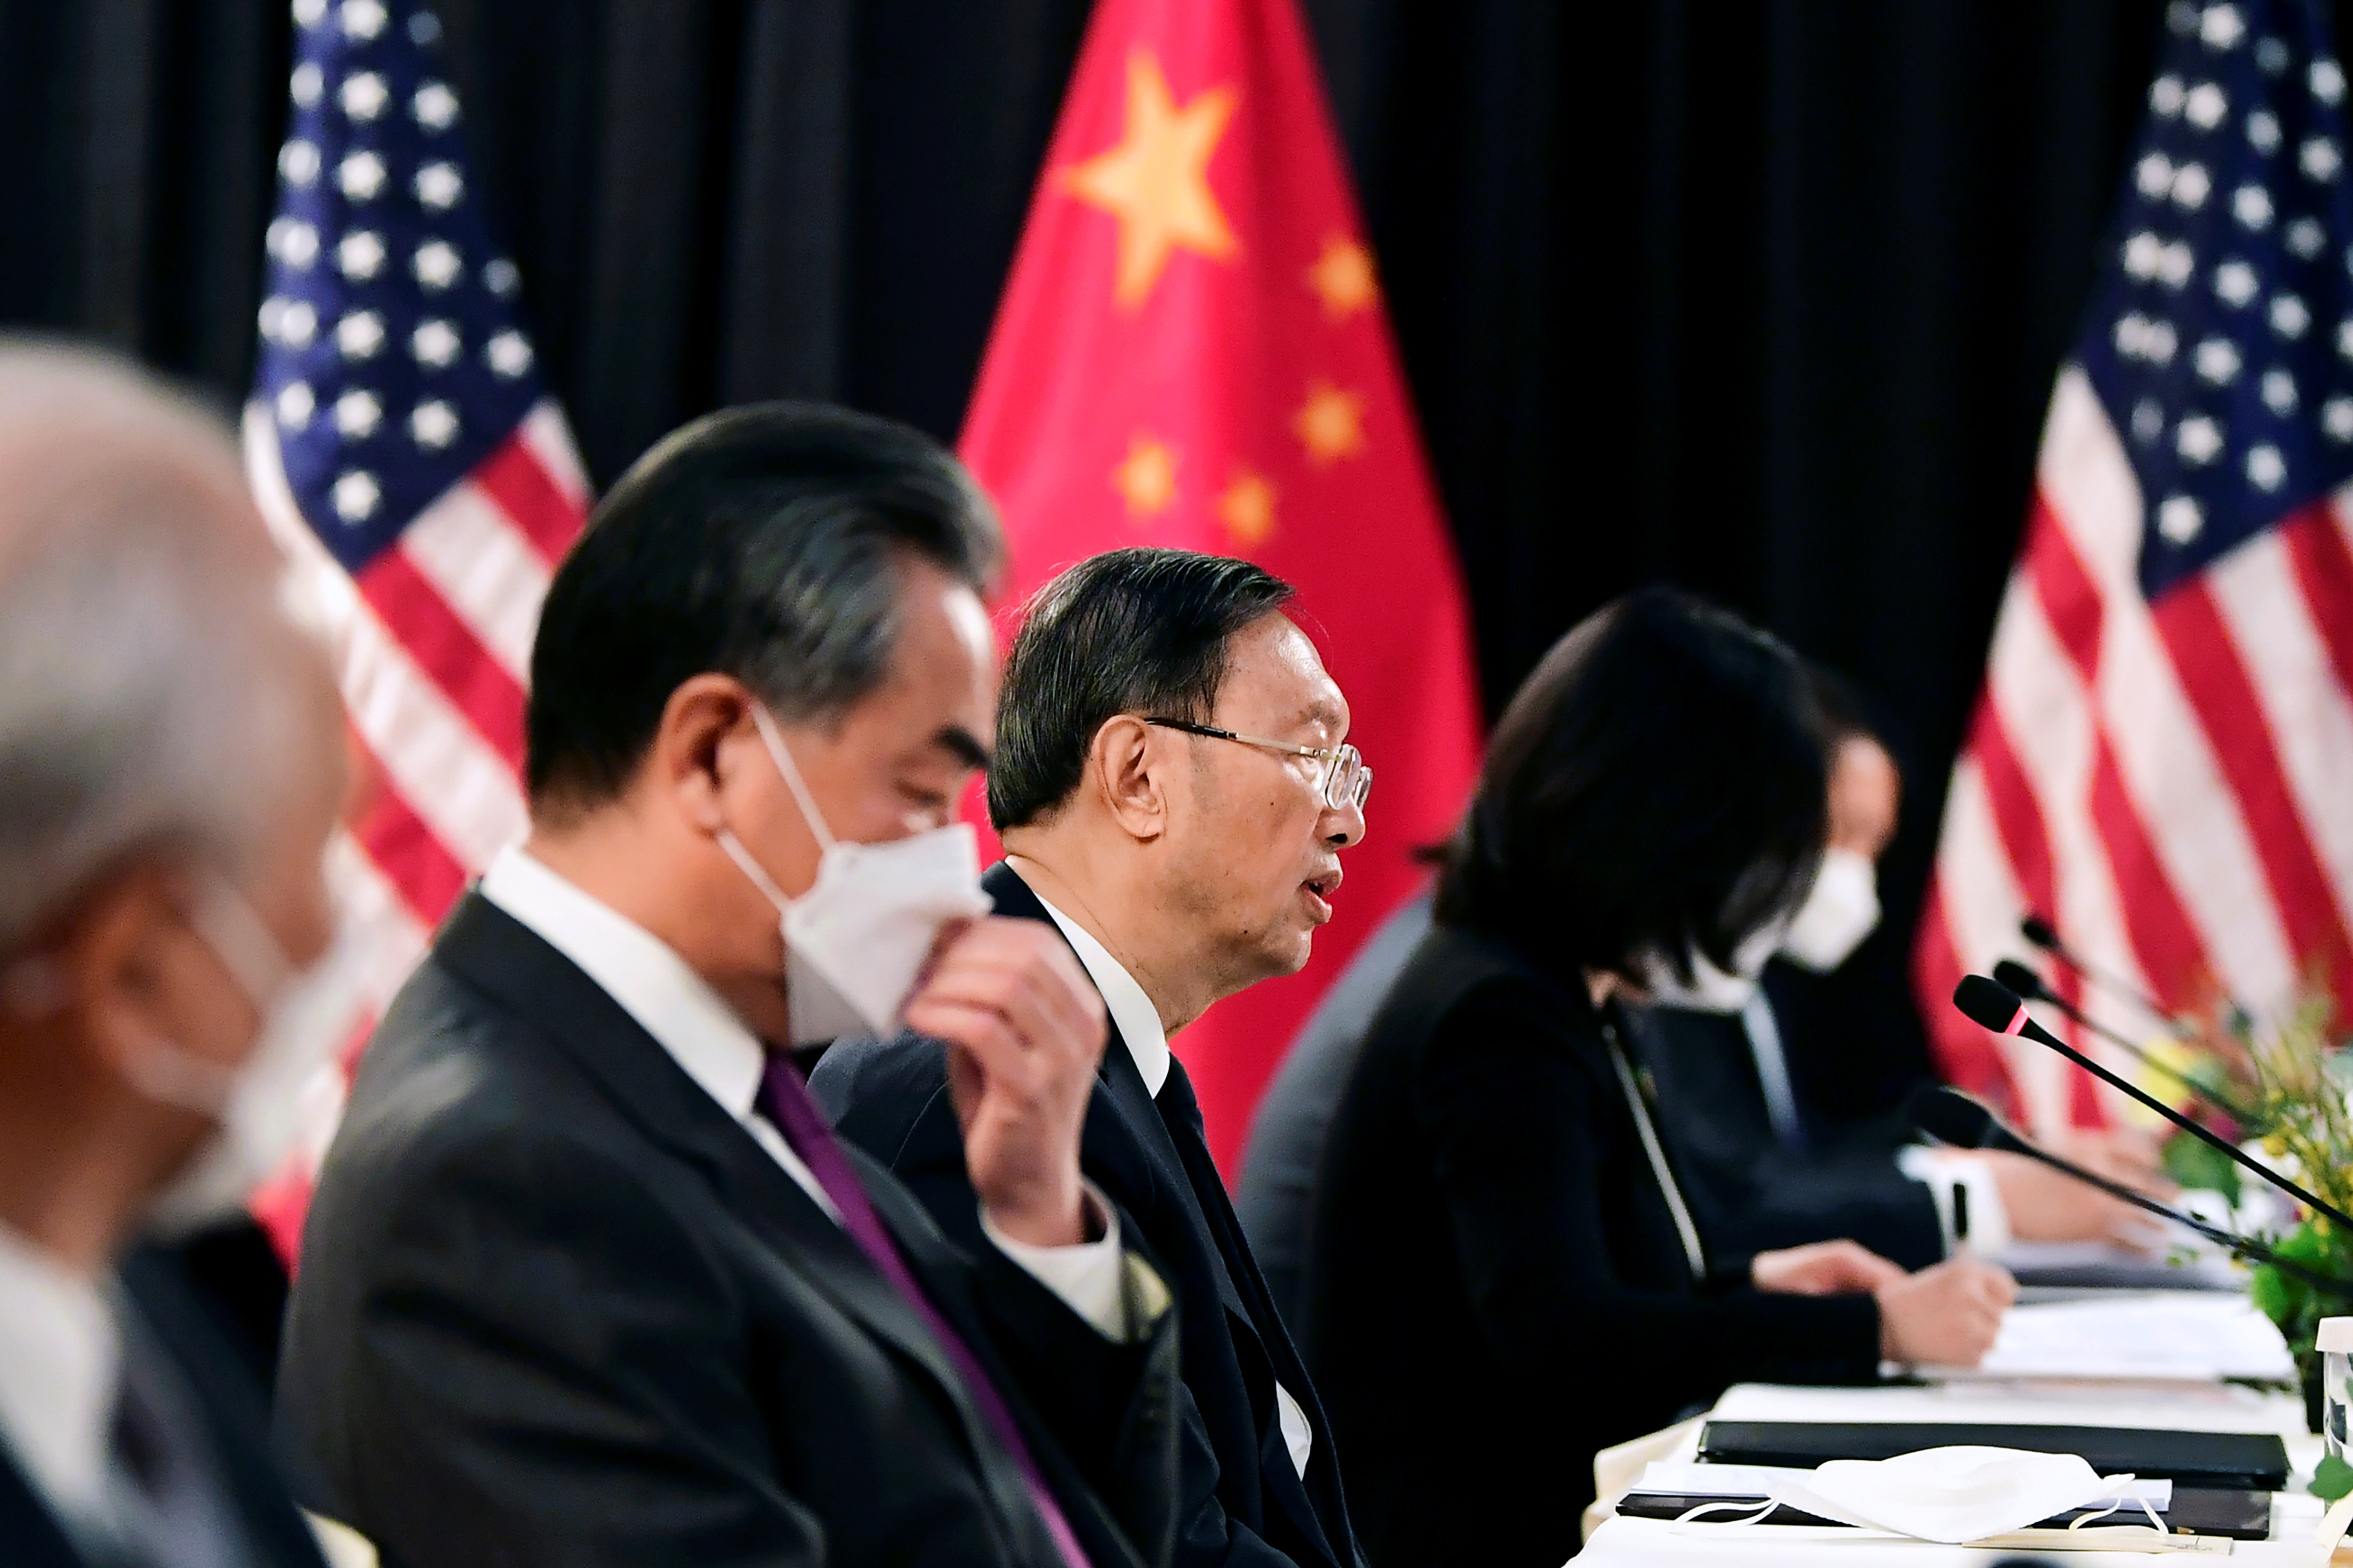 The Chinese delegation led by Yang Jiechi (C), director of the Central Foreign Affairs Commission Office and Wang Yi (2nd L), China's State Councilor and Foreign Minister, speak with their U.S. counterparts at the opening session of U.S.-China talks at the Captain Cook Hotel in Anchorage, Alaska, U.S. March 18, 2021.  Frederic J. Brown/Pool via REUTERS